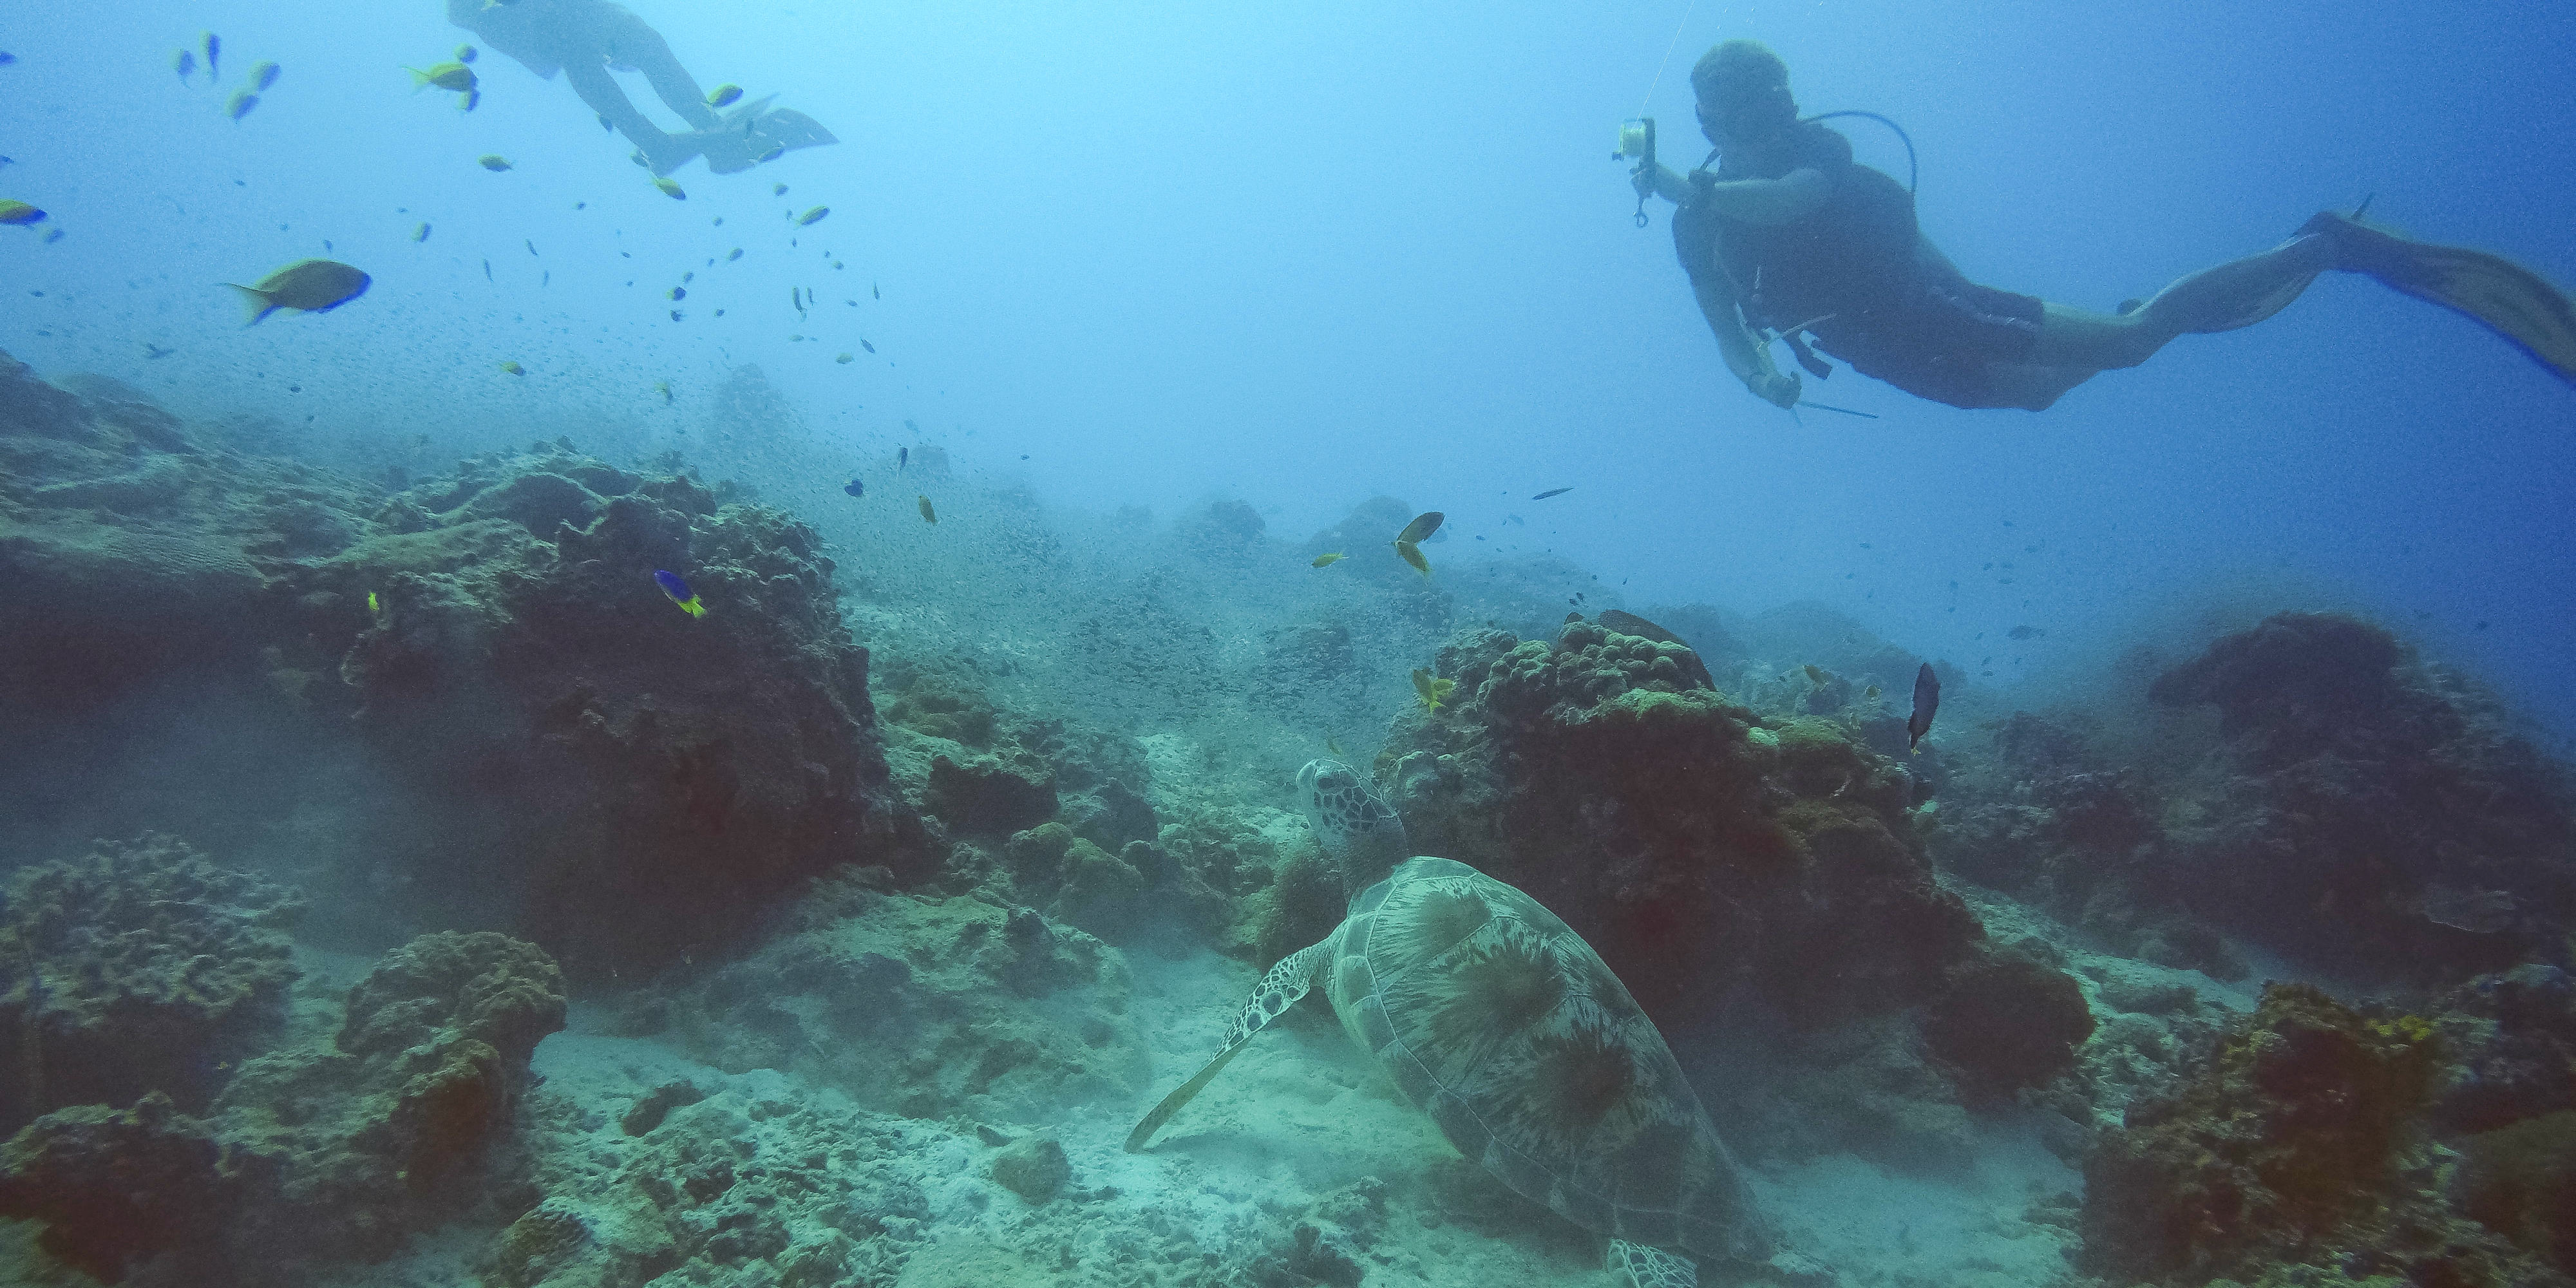 GVI participants explore the coral reefs surrounding Mahe while on a gap year.